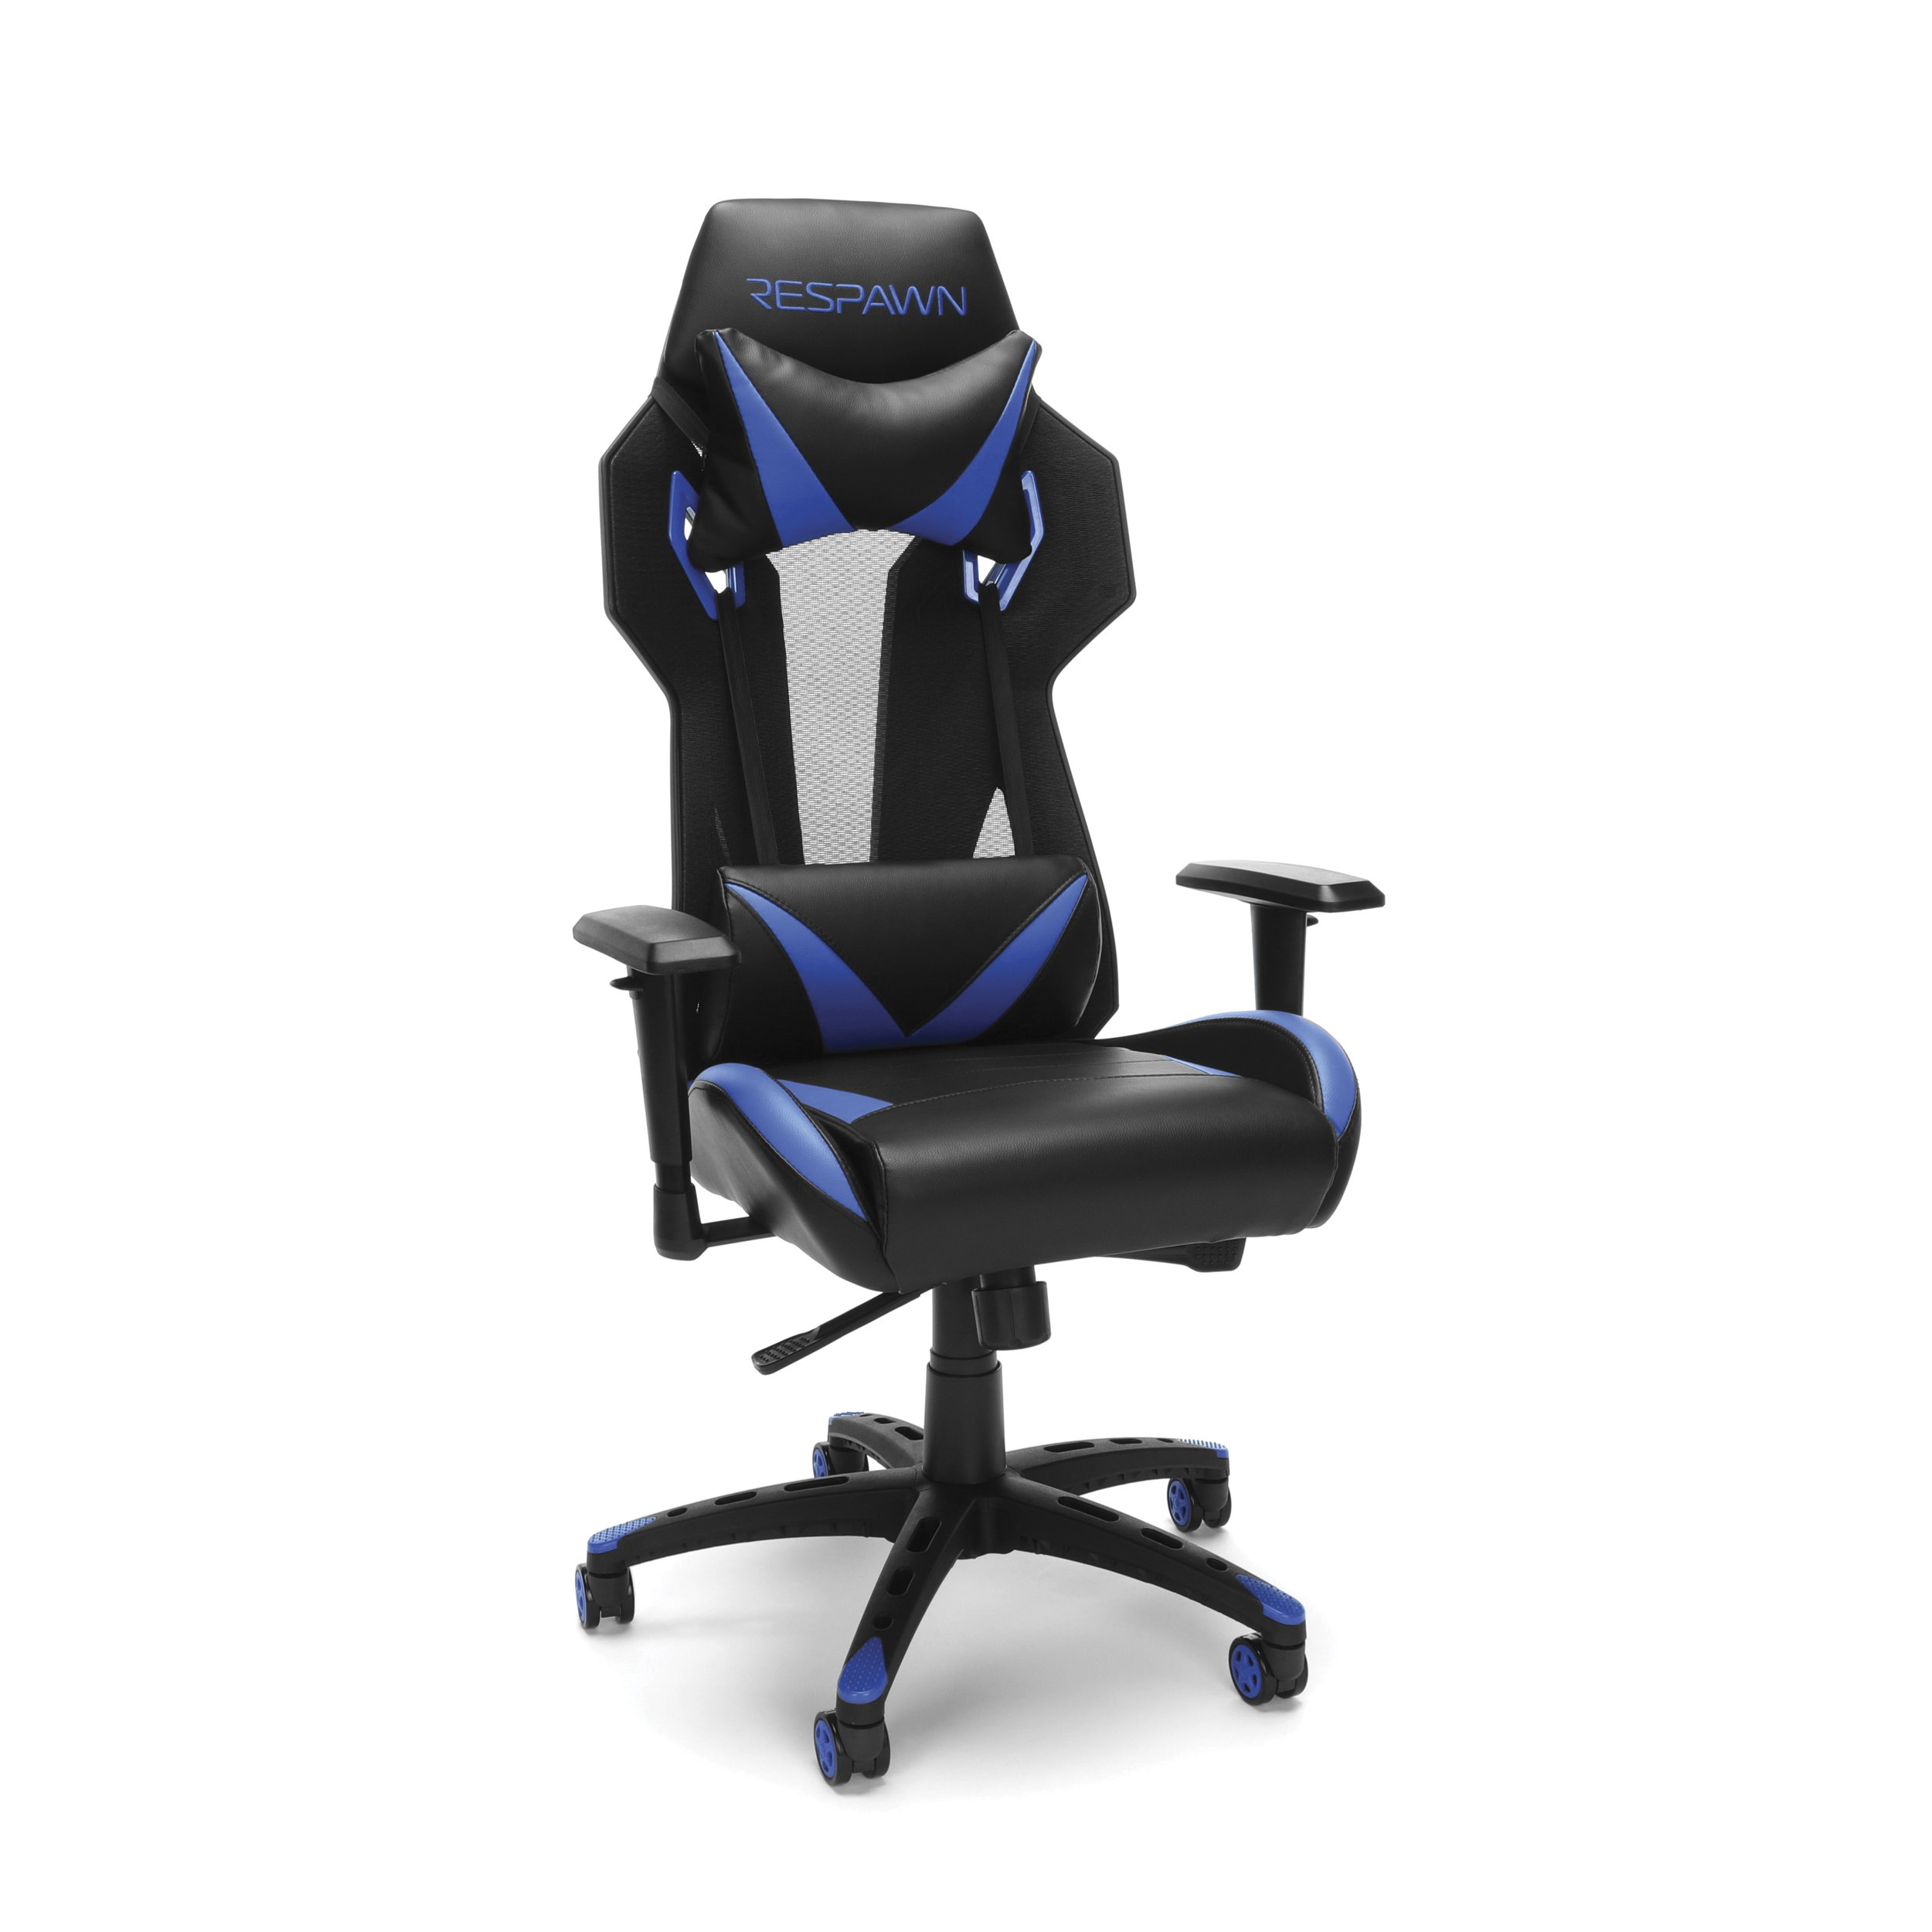 RESPAWN-205 Racing Style Gaming Chair -  Ergonomic Performance Mesh Back Chair, Office or Gaming Chair (RSP-205-BLU)